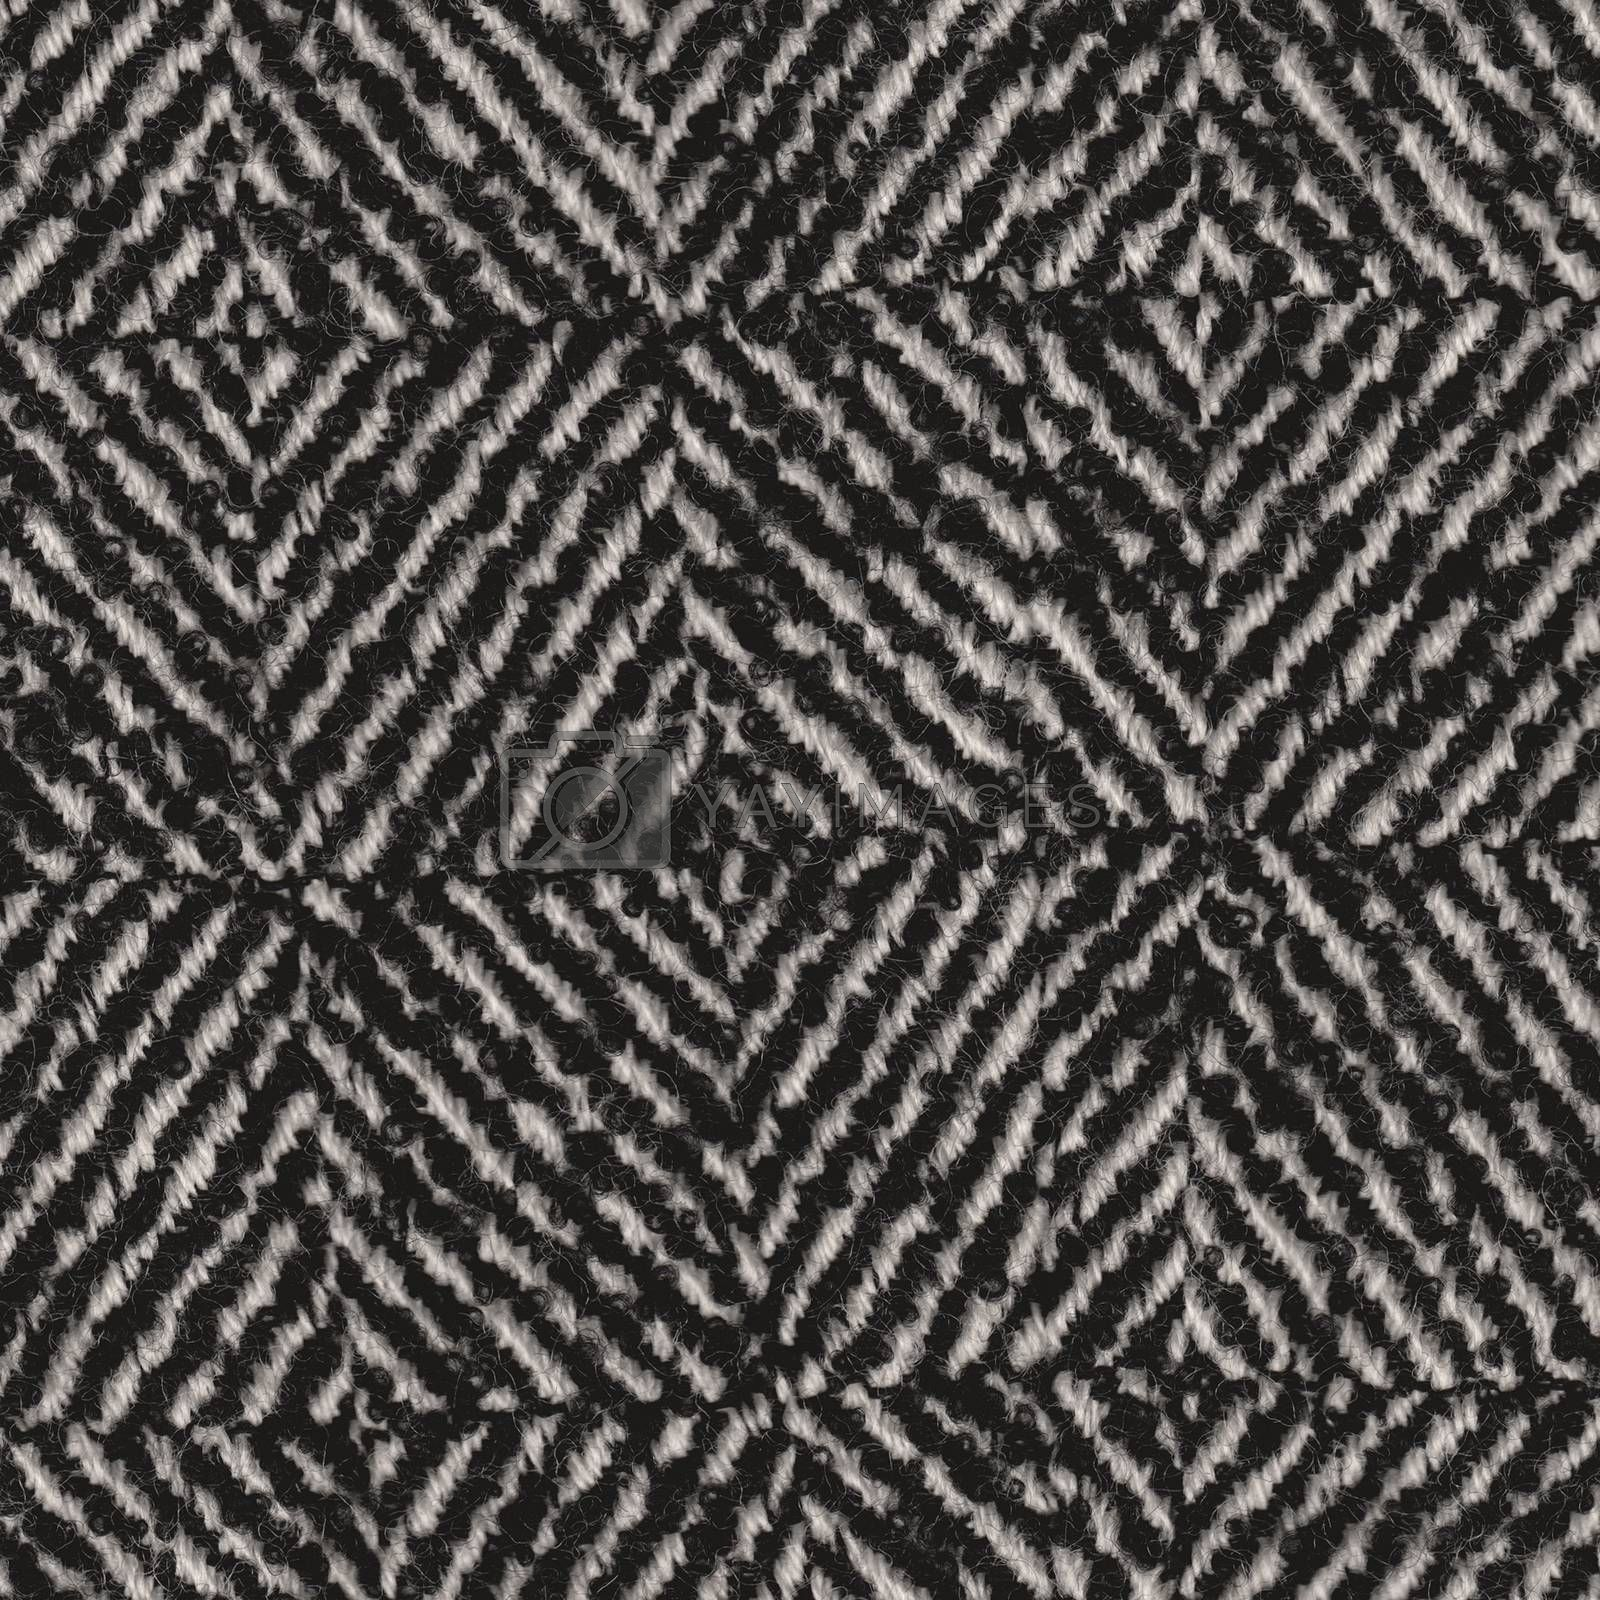 Real close-up wool texture and background, grey color